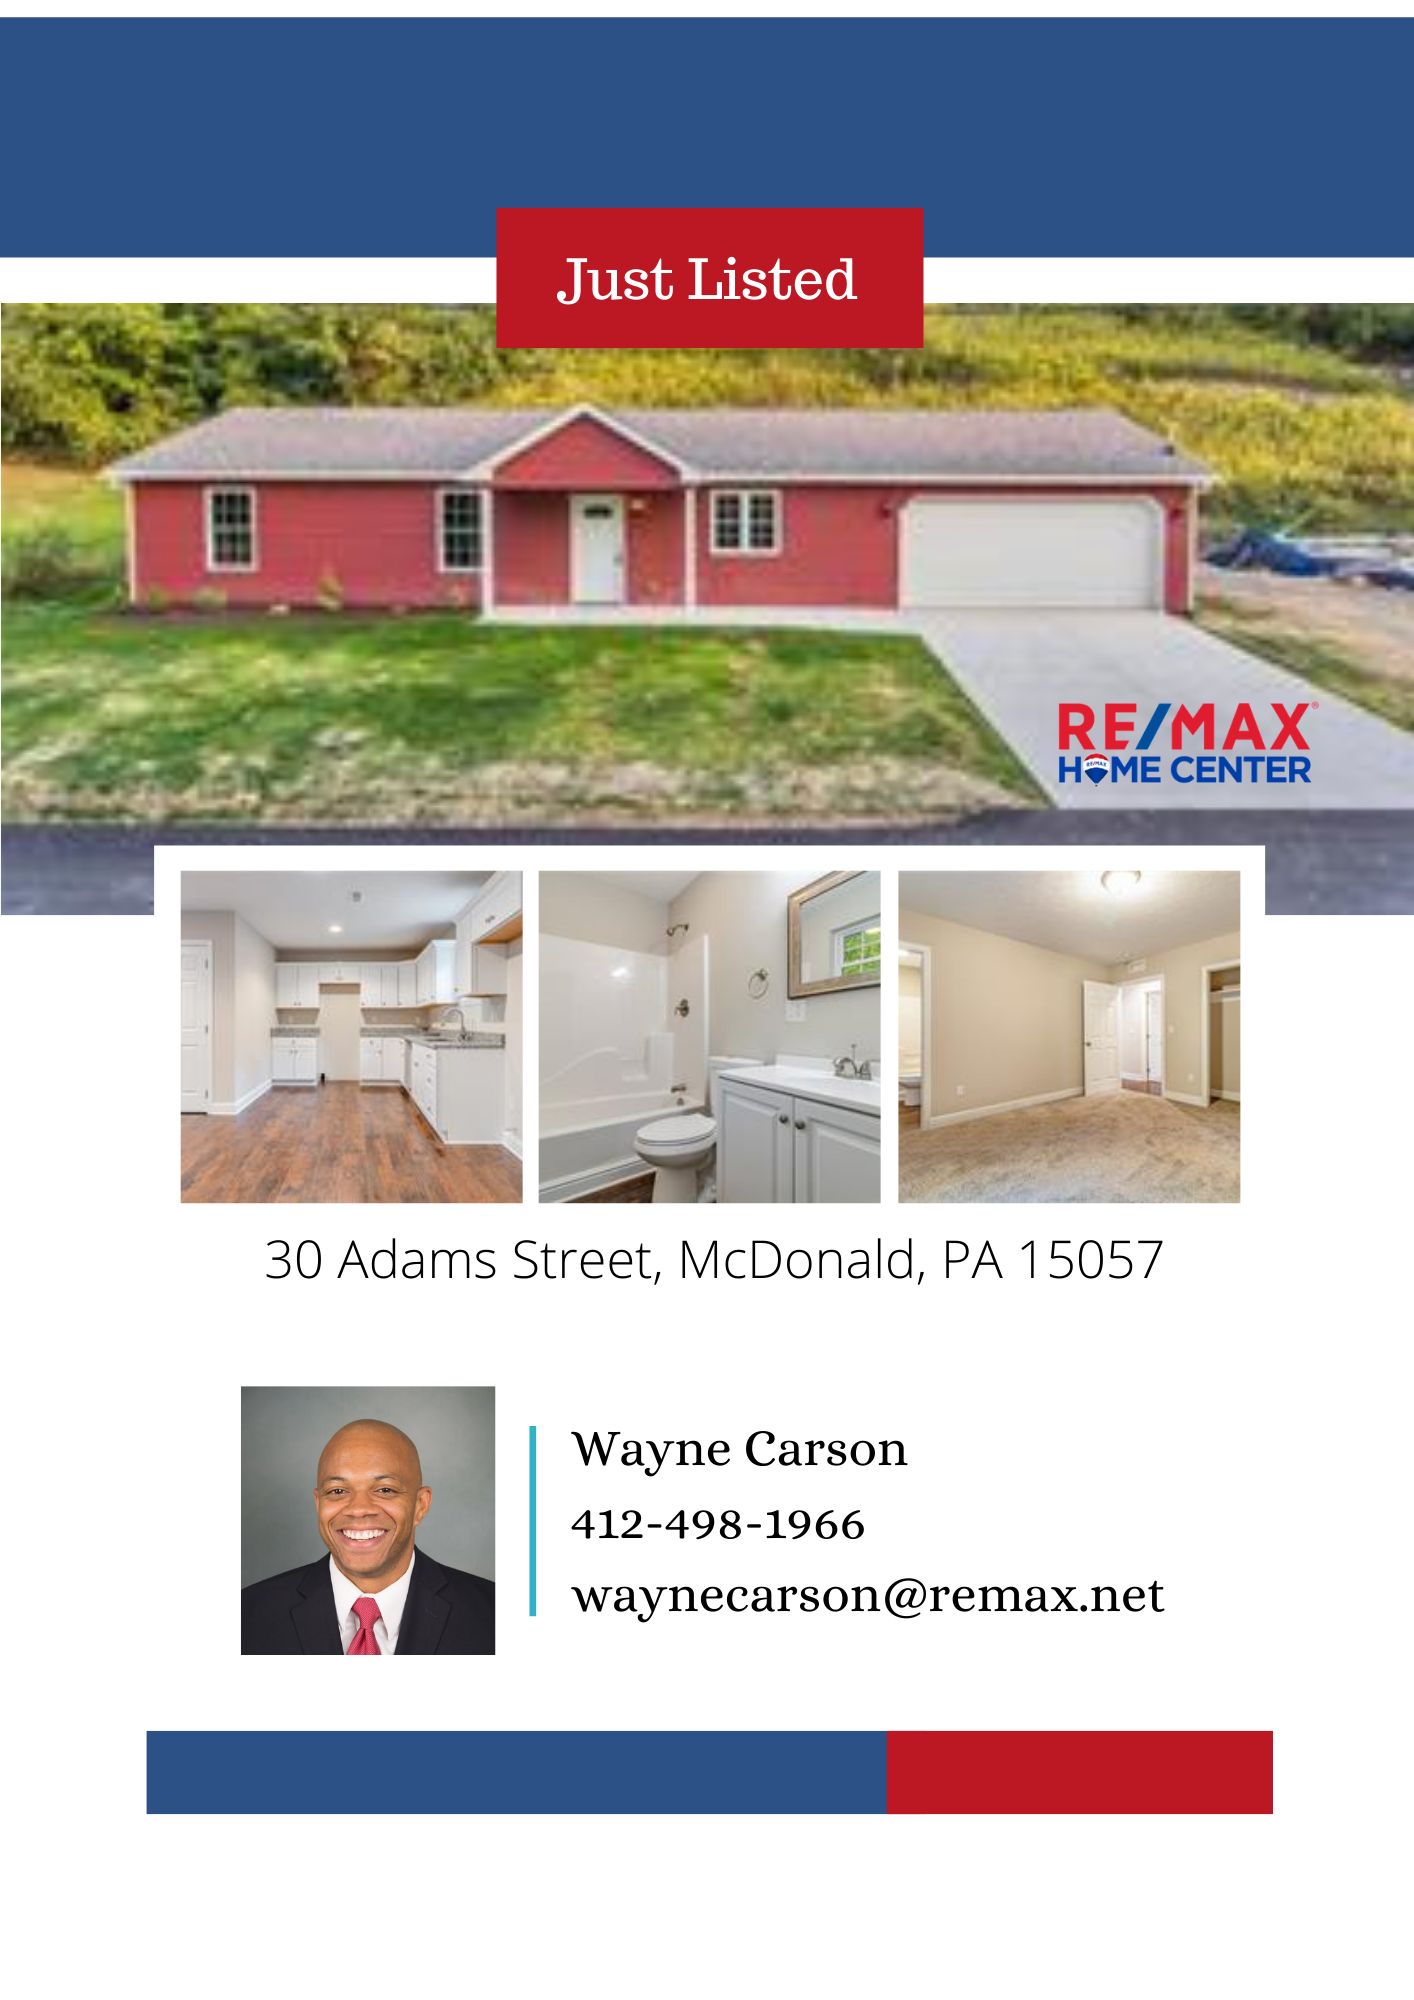 Come check out this new listing on the market! You could be coming home to this! Don't miss this one! #JustListed #Buyers #WayneCarson #ReMaxHomeCenter